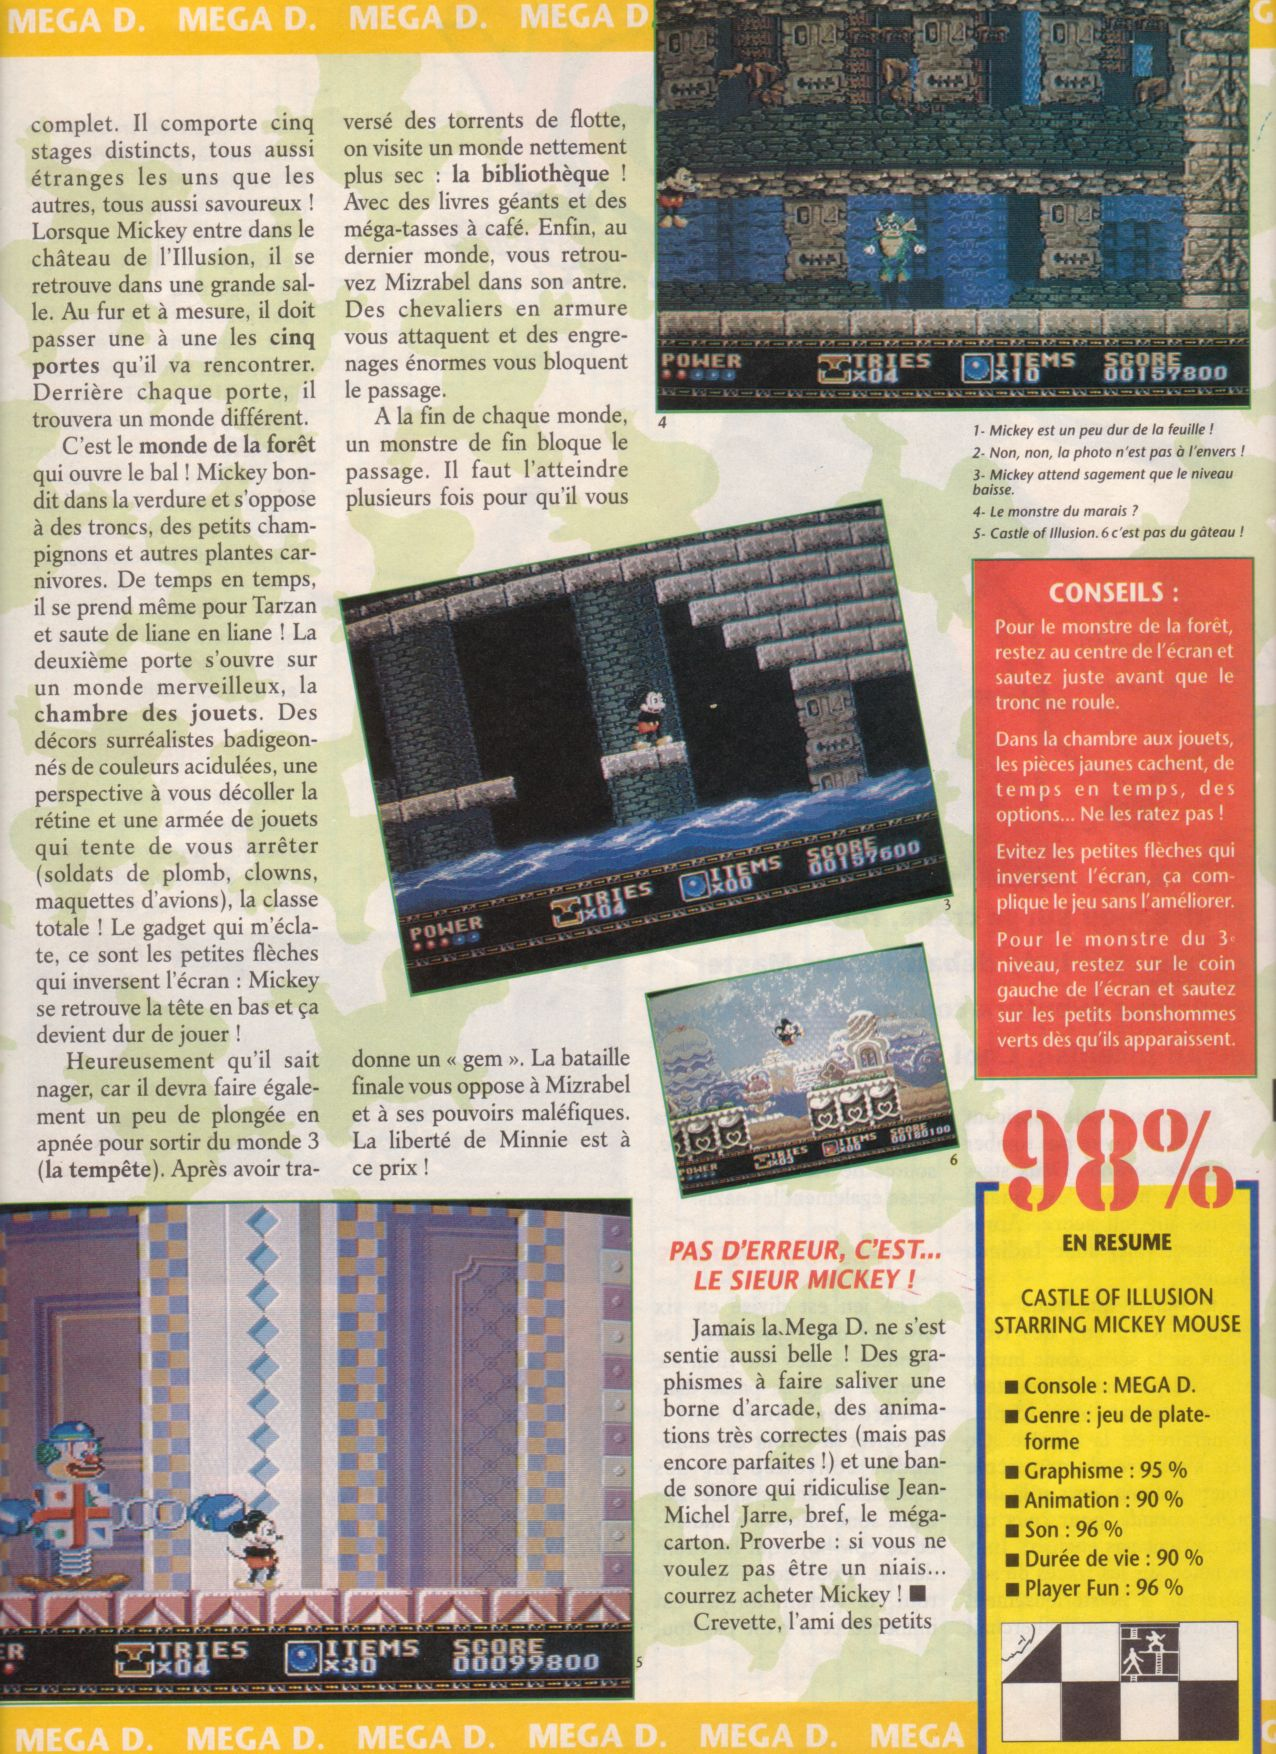 Le topic officiel de la Megadrive - Page 26 Player%20One%20008%20-%20Page%20023%20%281991-04%29